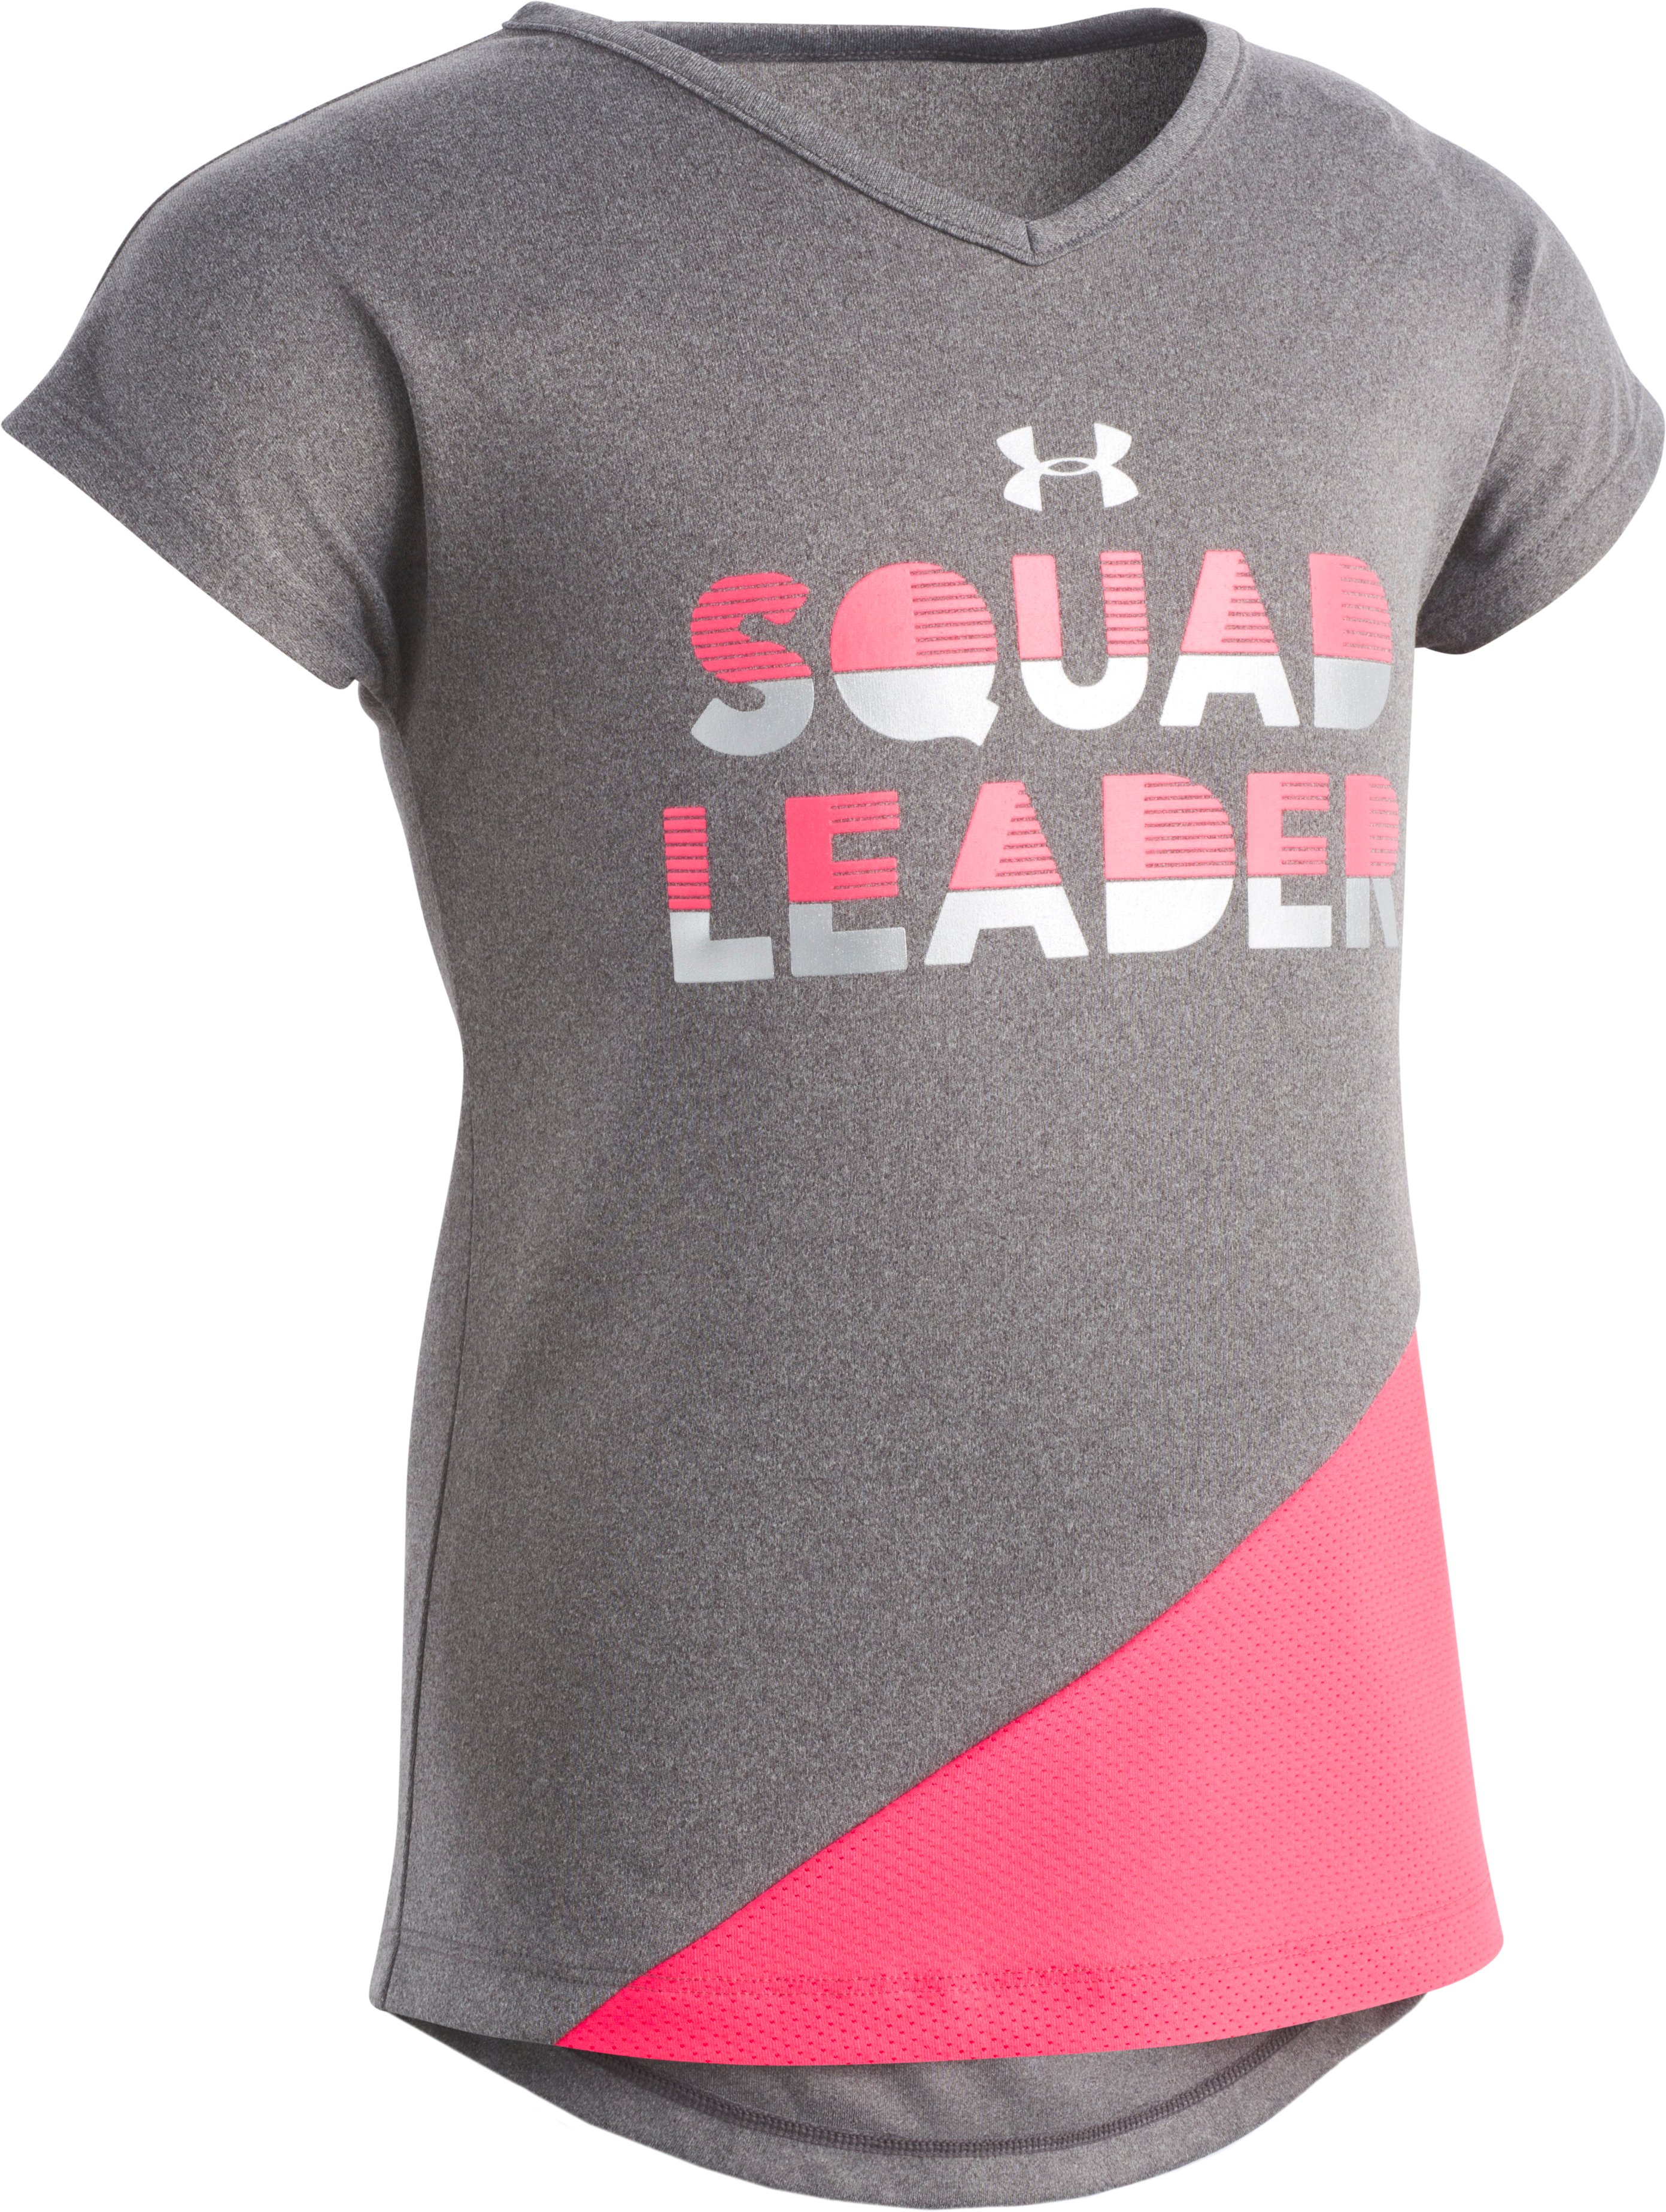 Girls' Toddler UA Squad Leader T-Shirt  1 Color $22.00